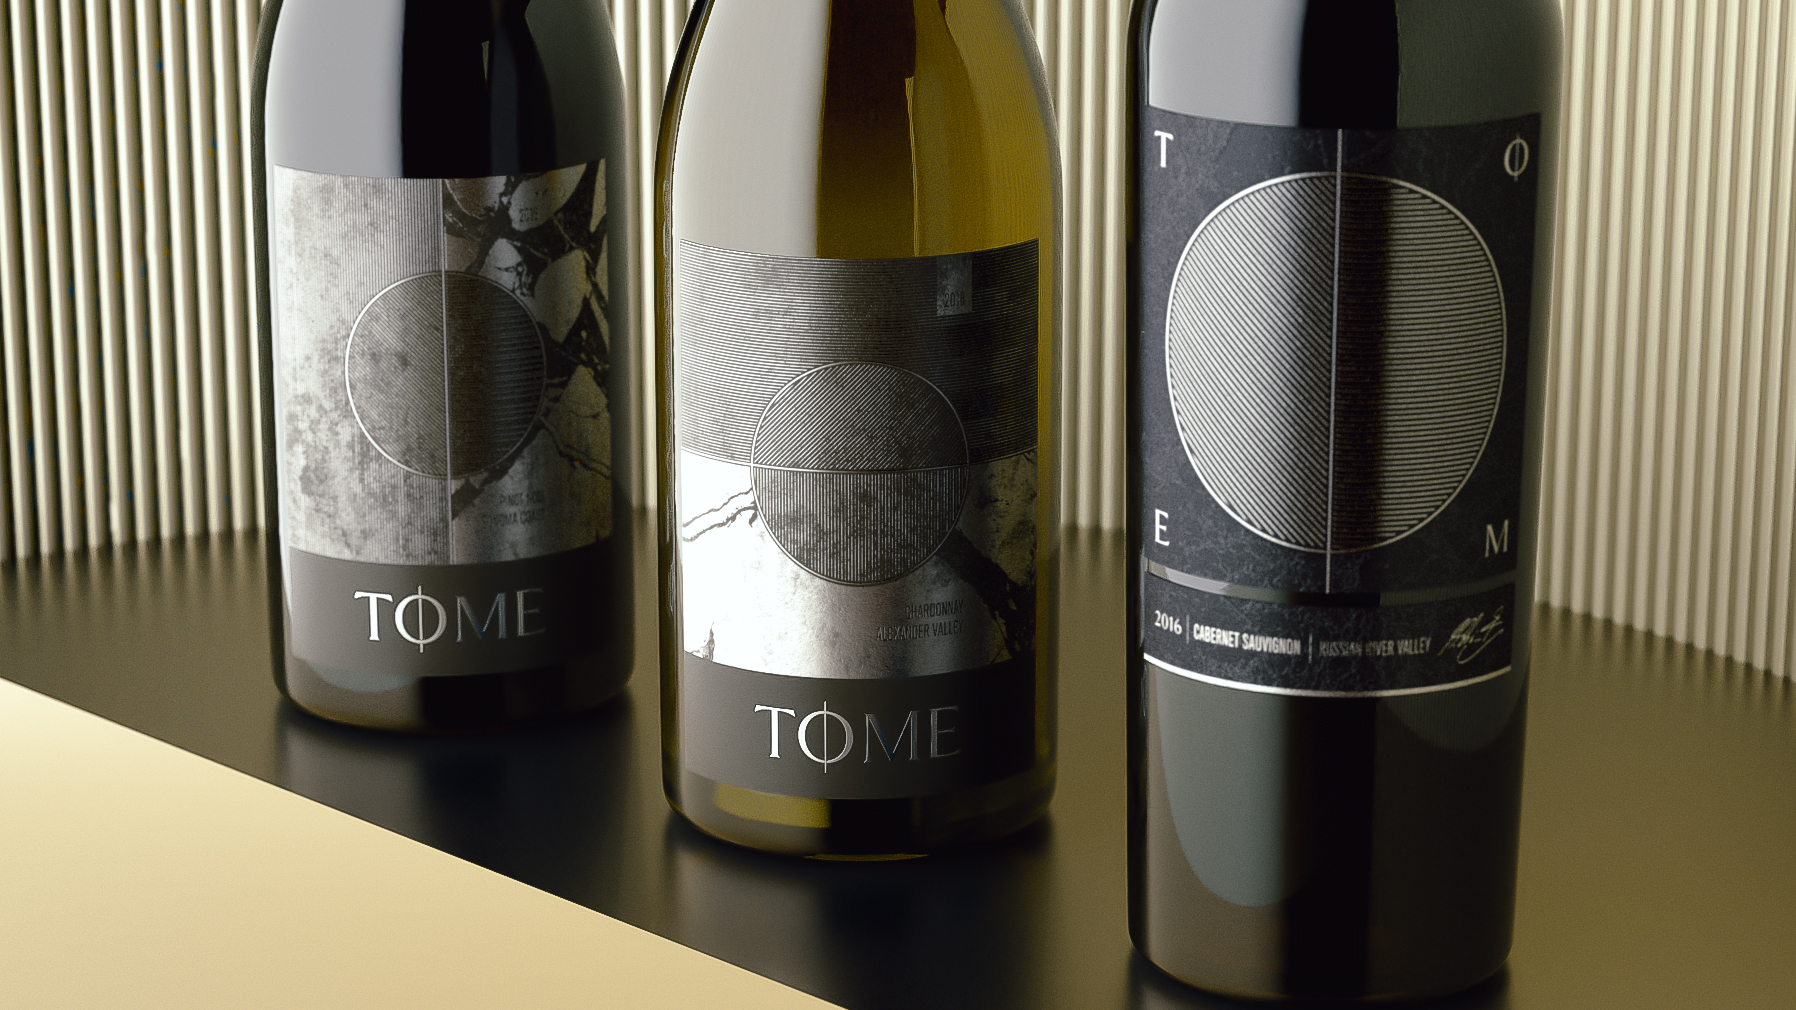 Tome Wines